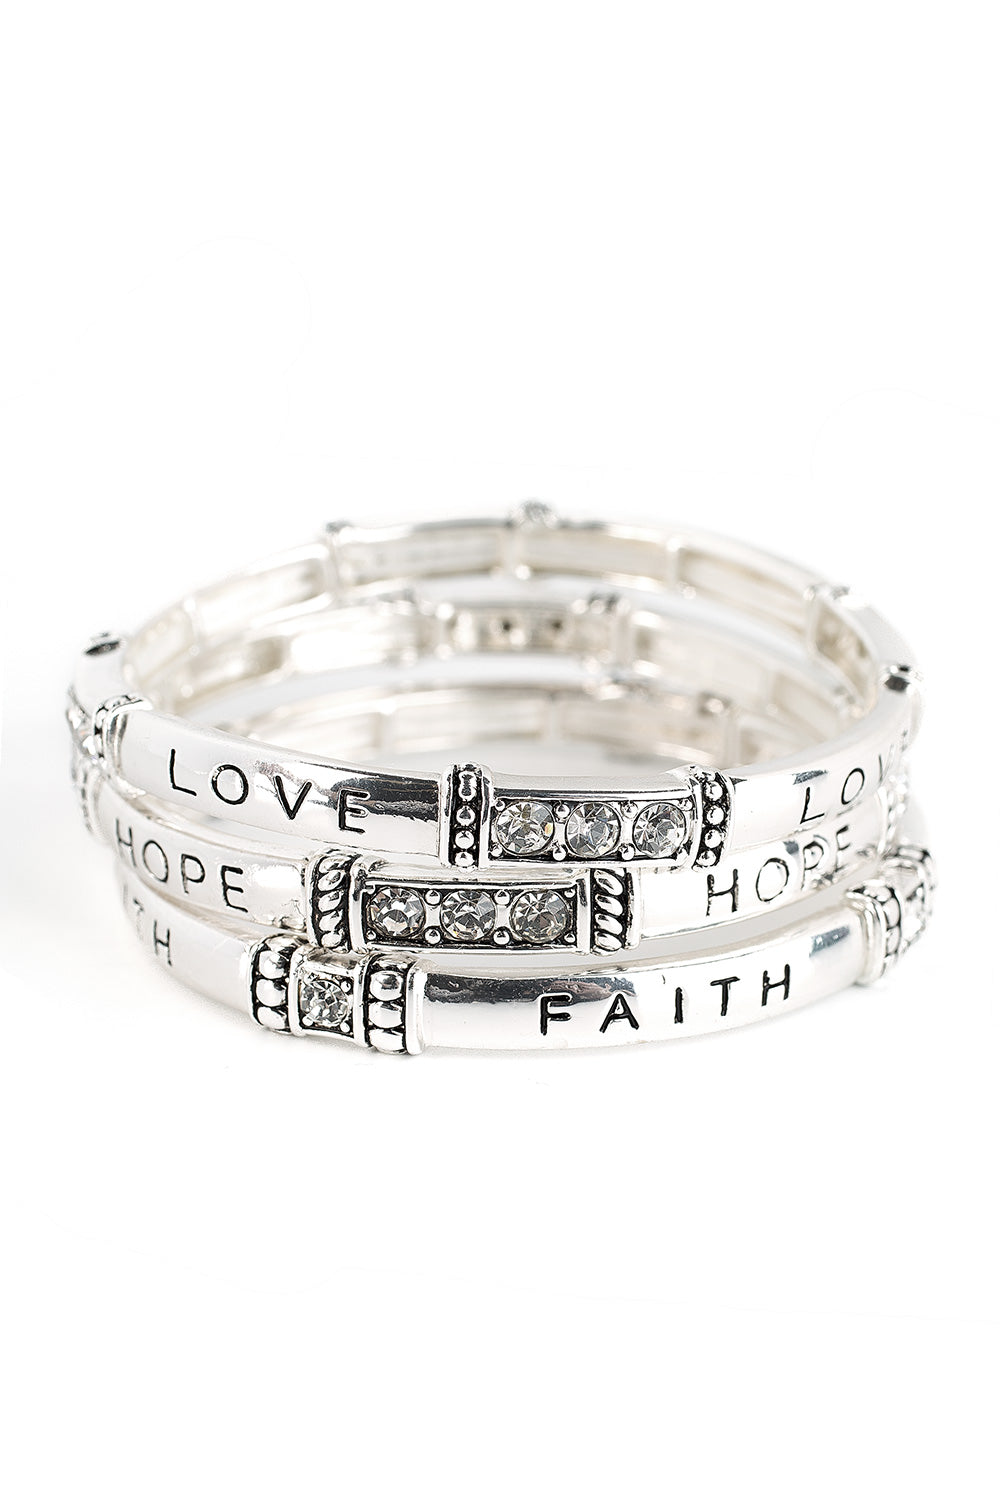 Type 2 Faith, Hope, and Love Bracelet